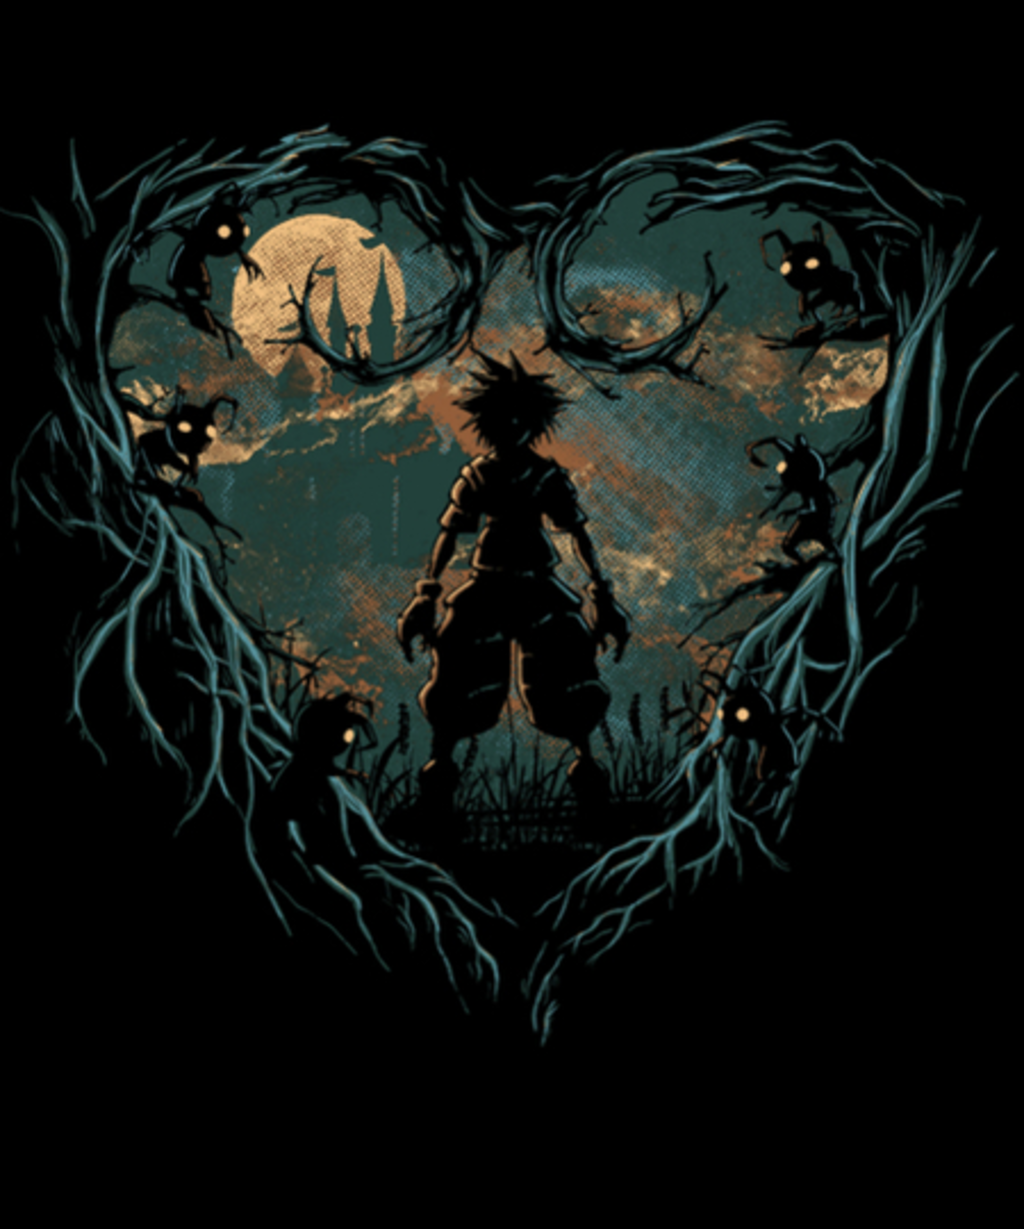 Qwertee: The night's heart